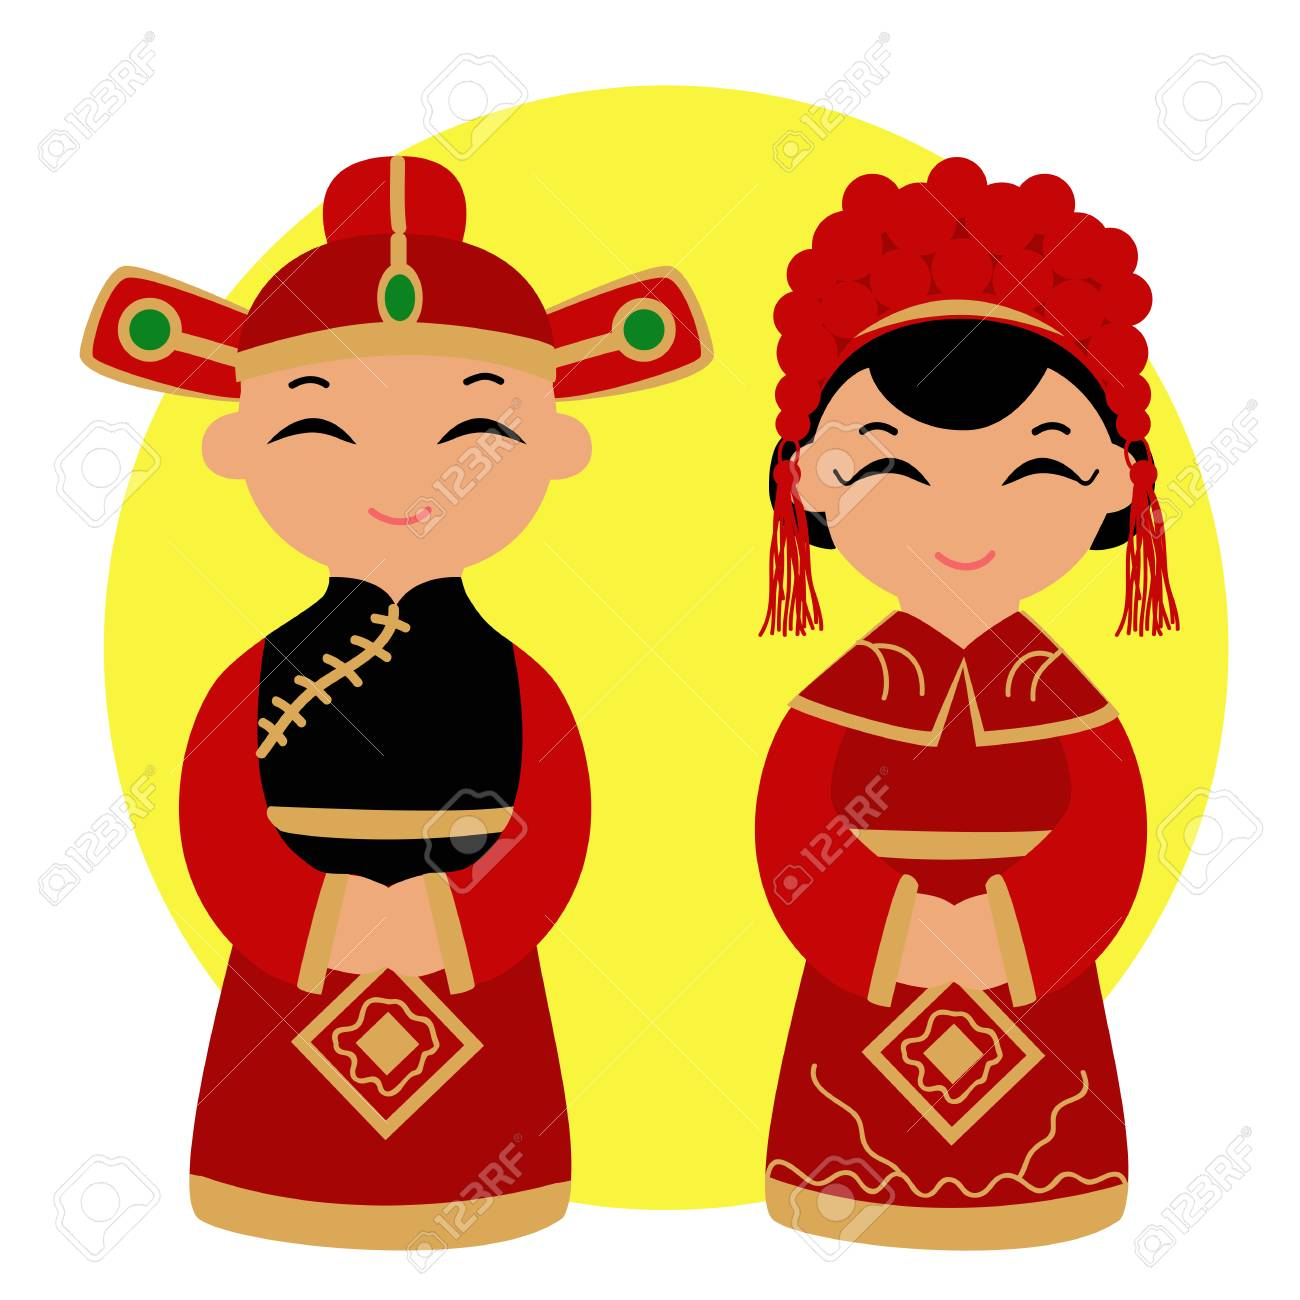 Chinese bride and groom. Chinese Couple In Traditional Wedding...